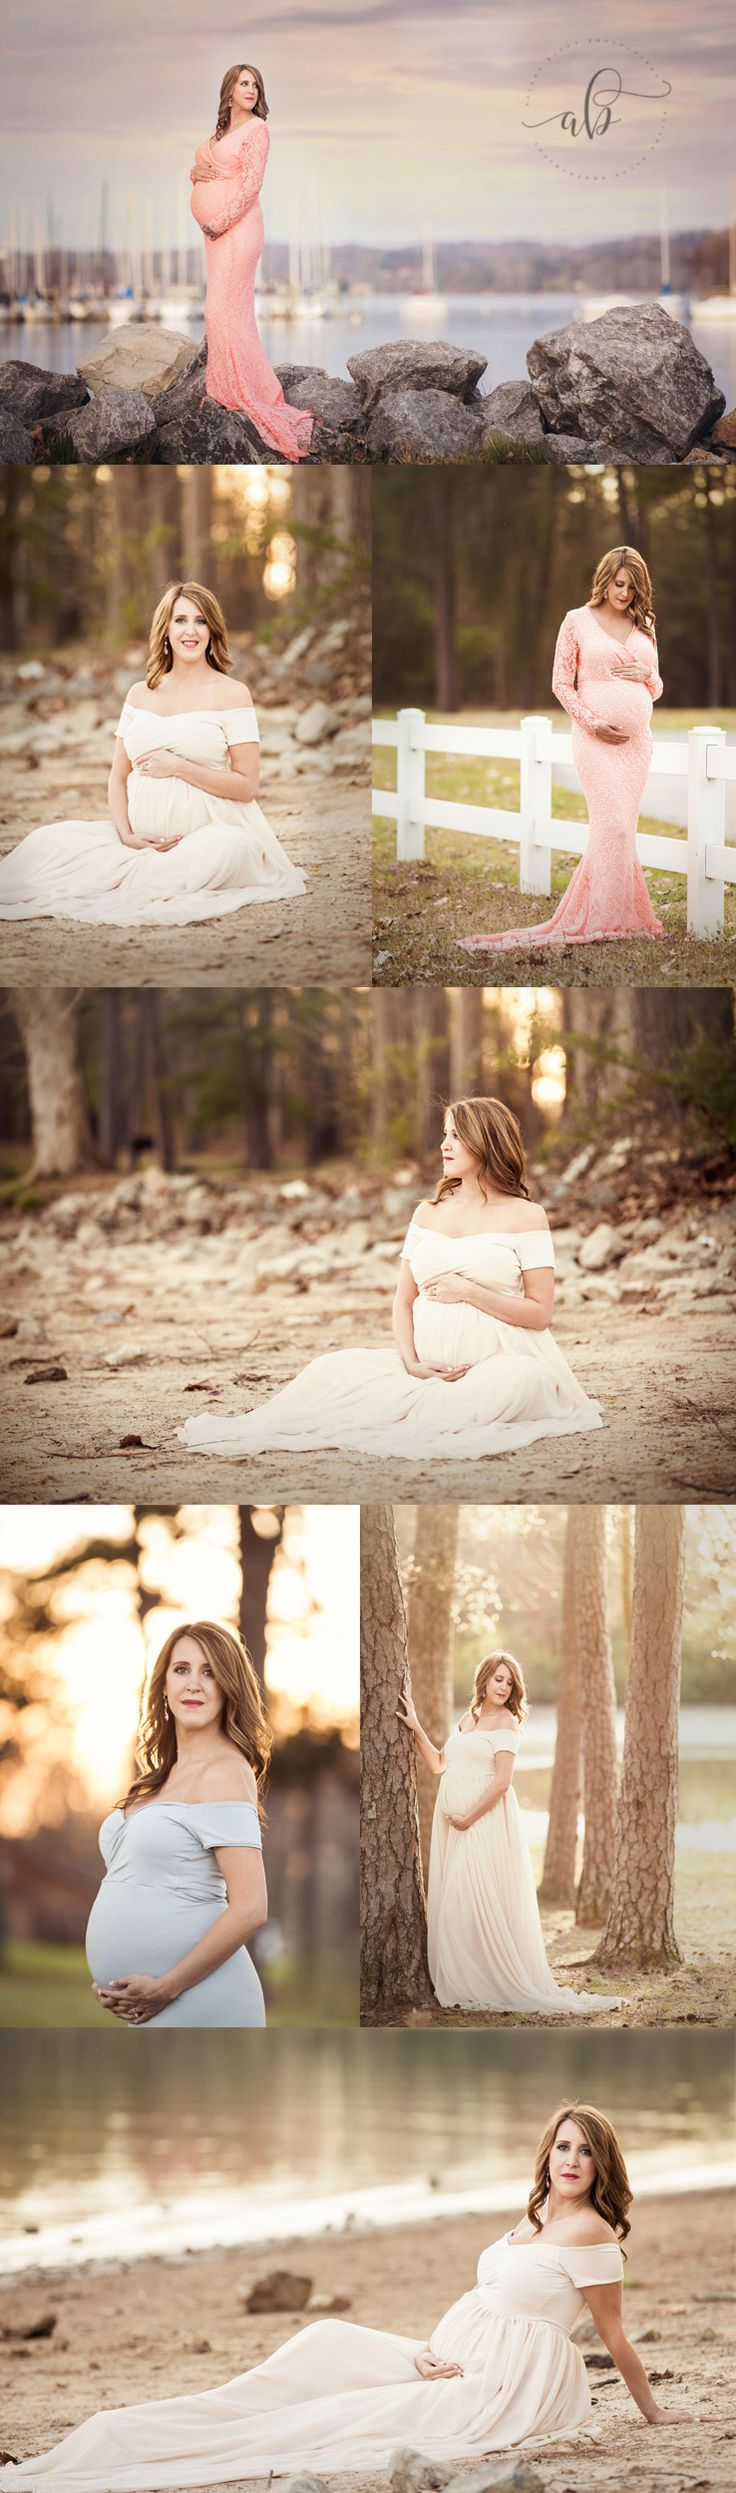 Knoxville TN Maternity Photographer #maternitypose Free gown rental with your Knoxville or Gatlinburg maternity session with Alisha Bacon Photography